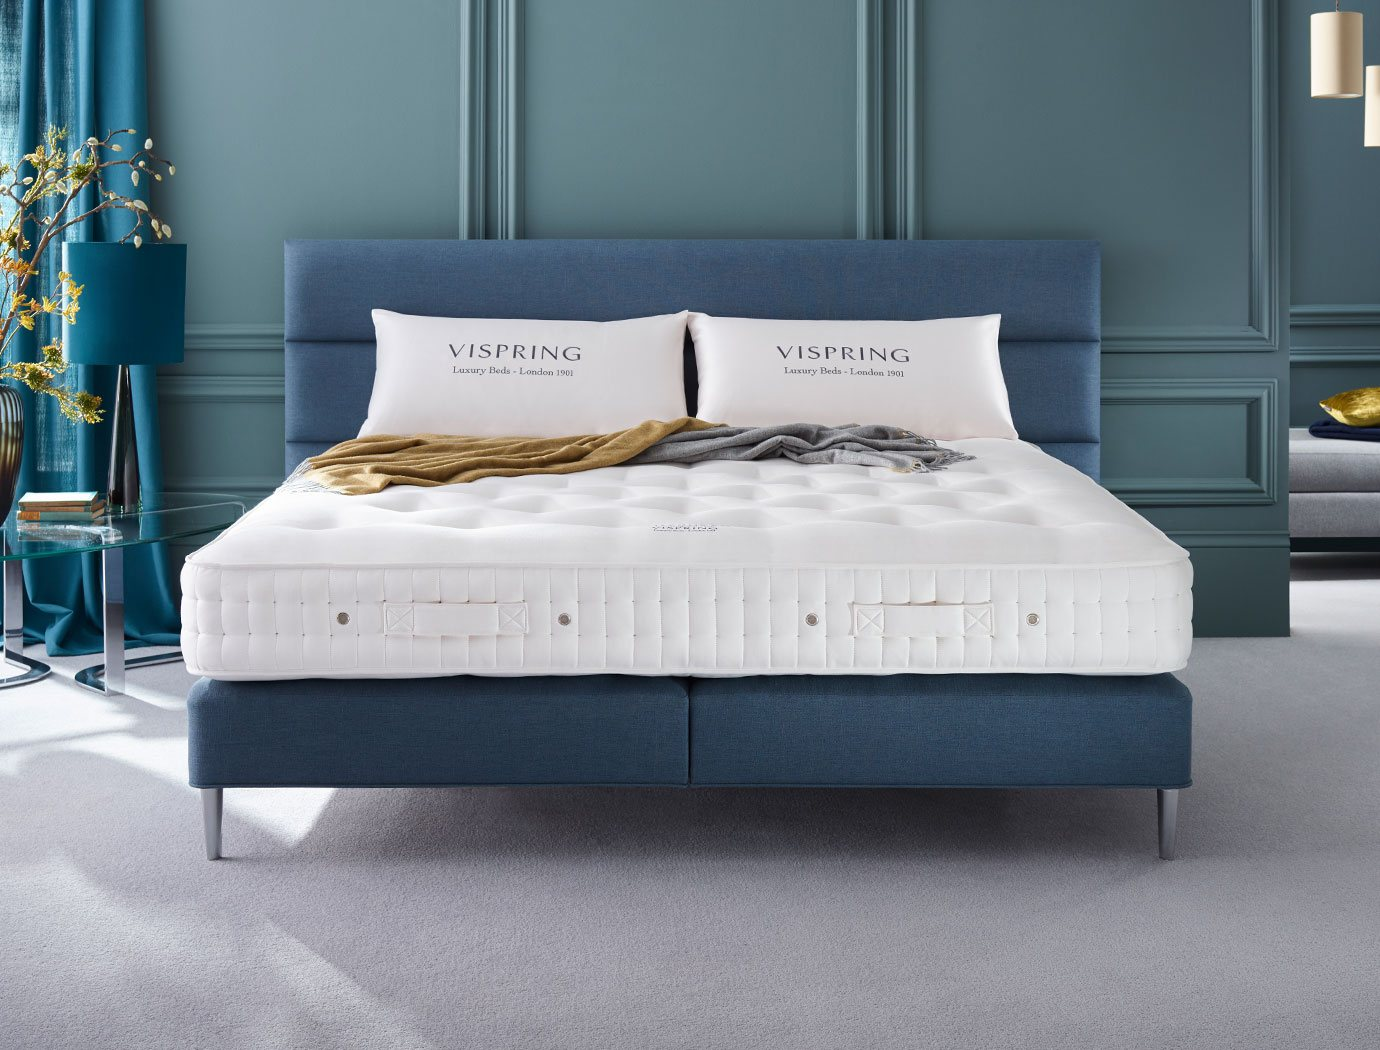 Vispring - Luxurious comfort and untroubled sleep.